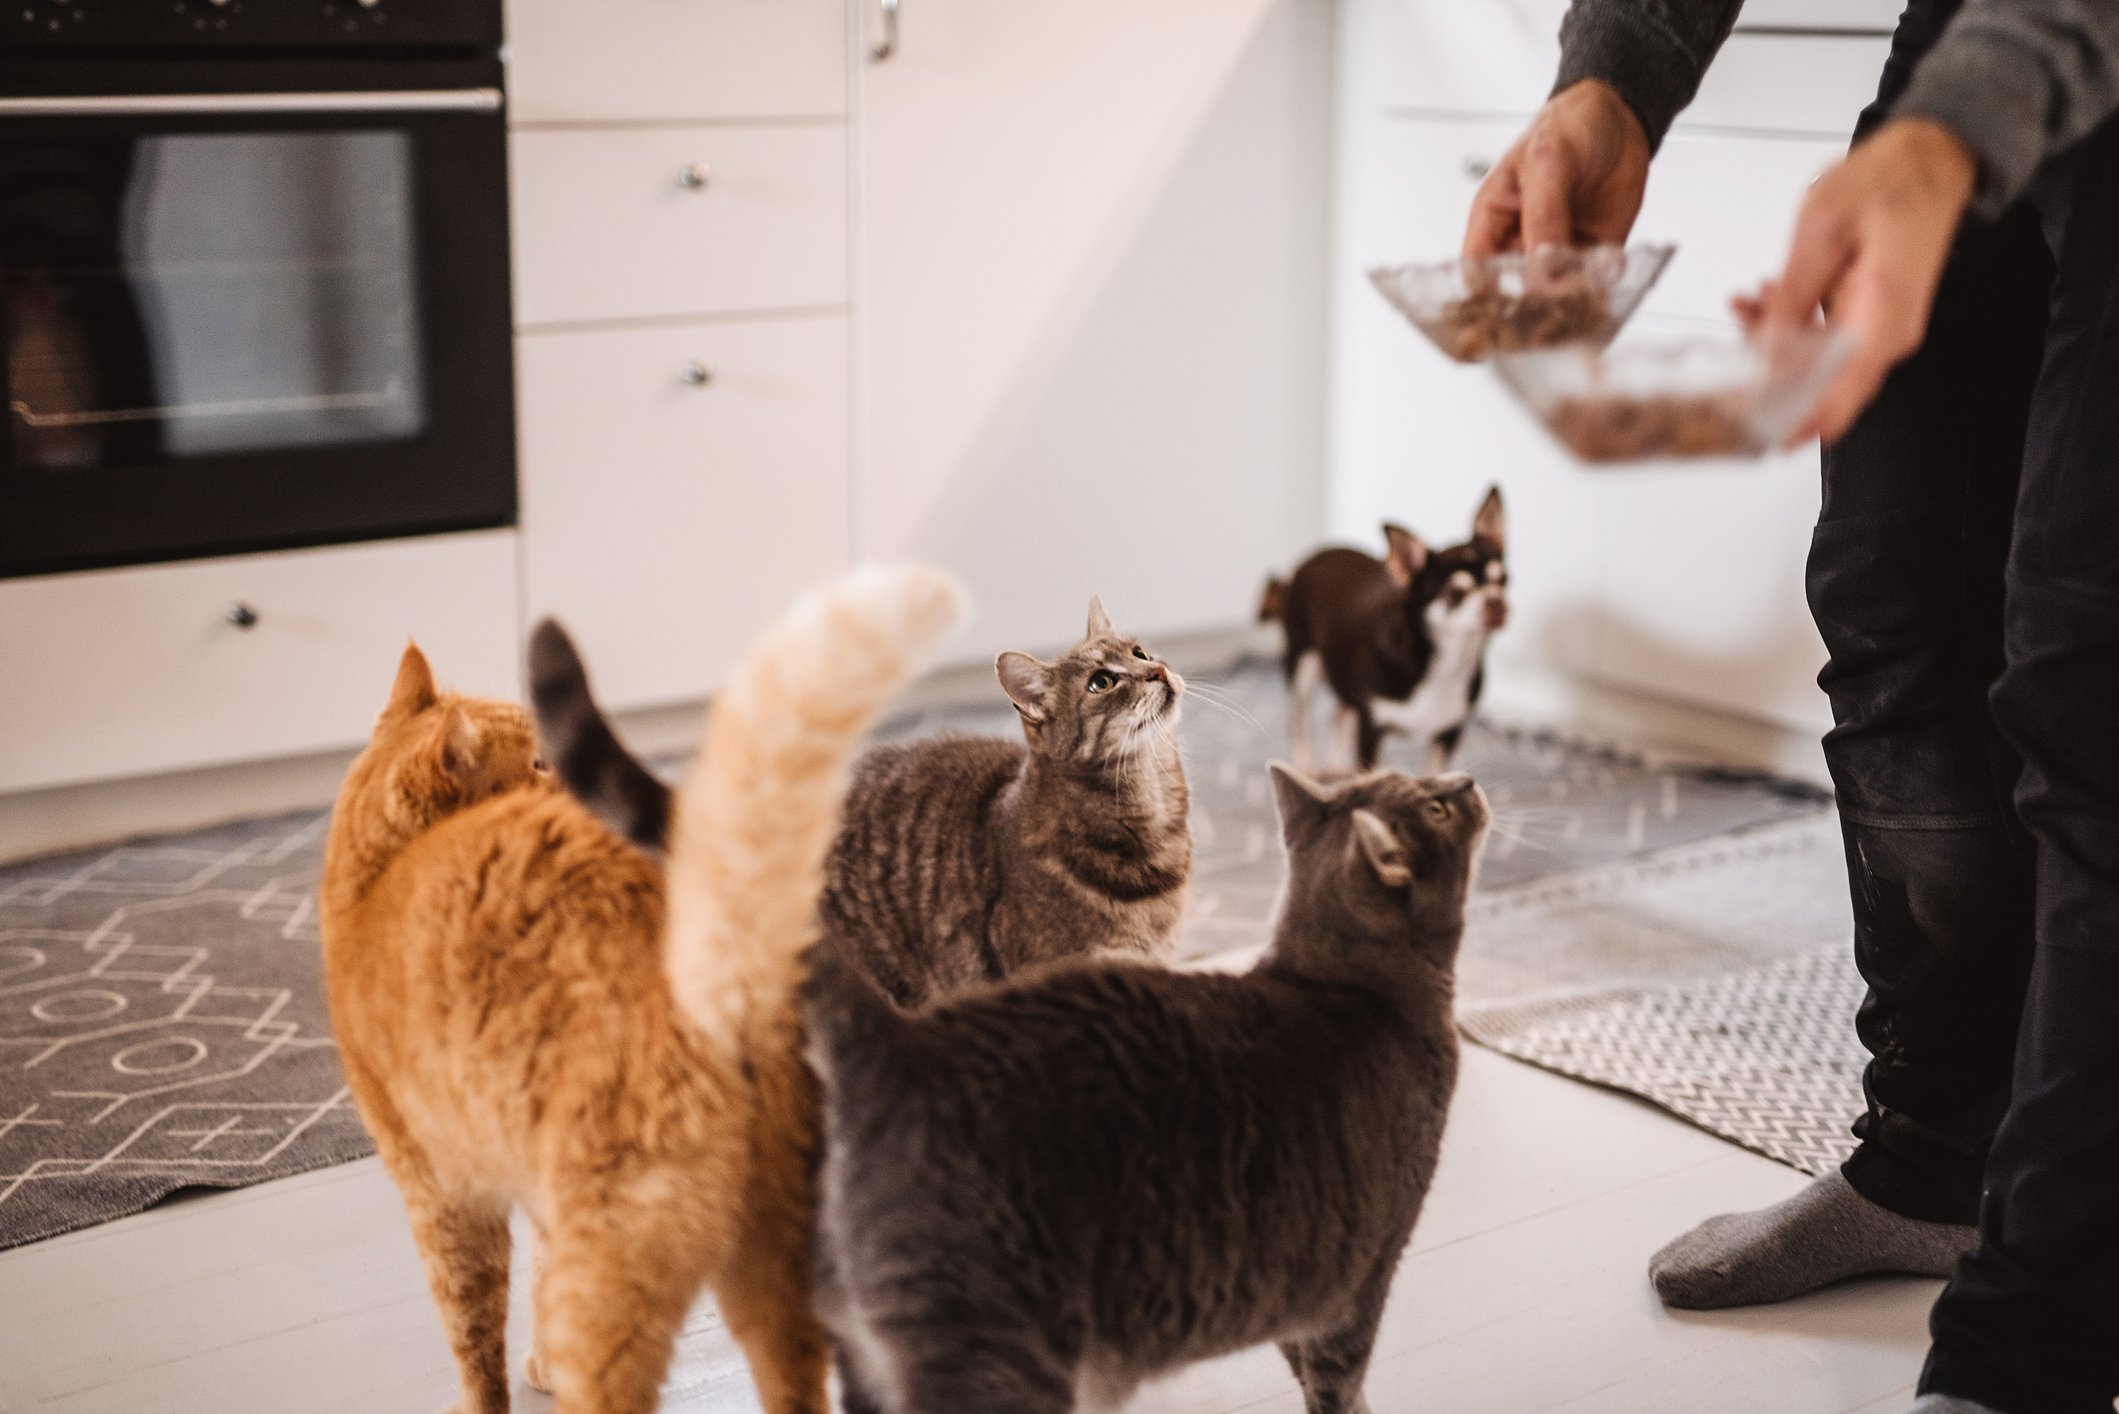 Cats and dog getting food in kitchen Photo taken indoors of 3 cats and a dog getting pet food from owner